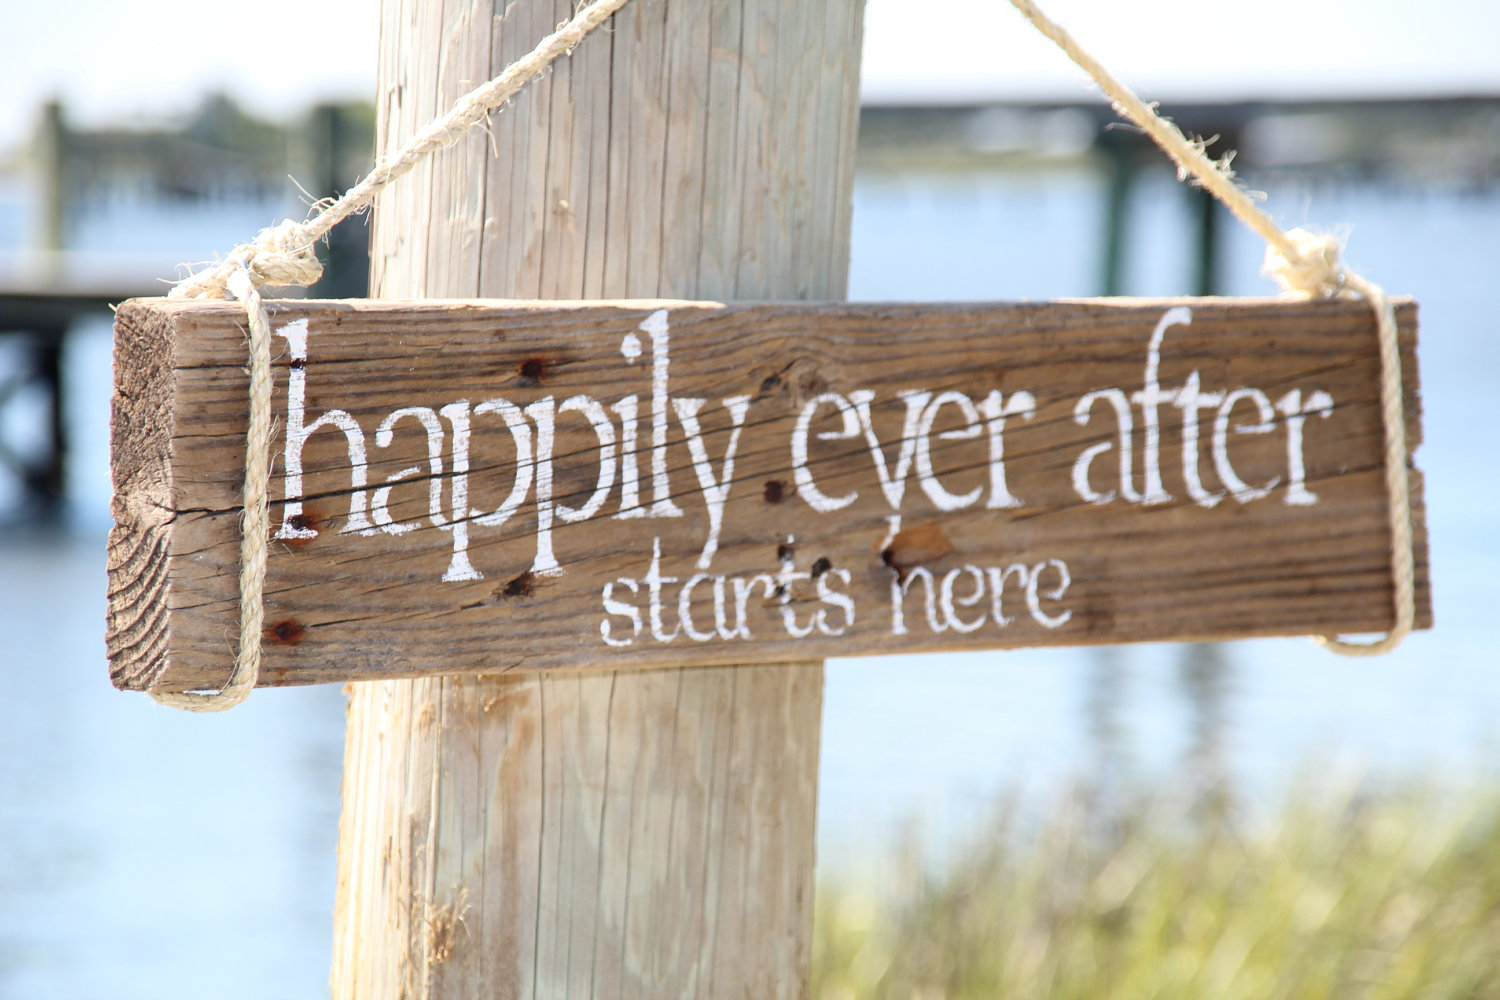 personalized-wedding-details-ceremony-reception-signs-on-etsy-happily-ever-after.original.jpeg